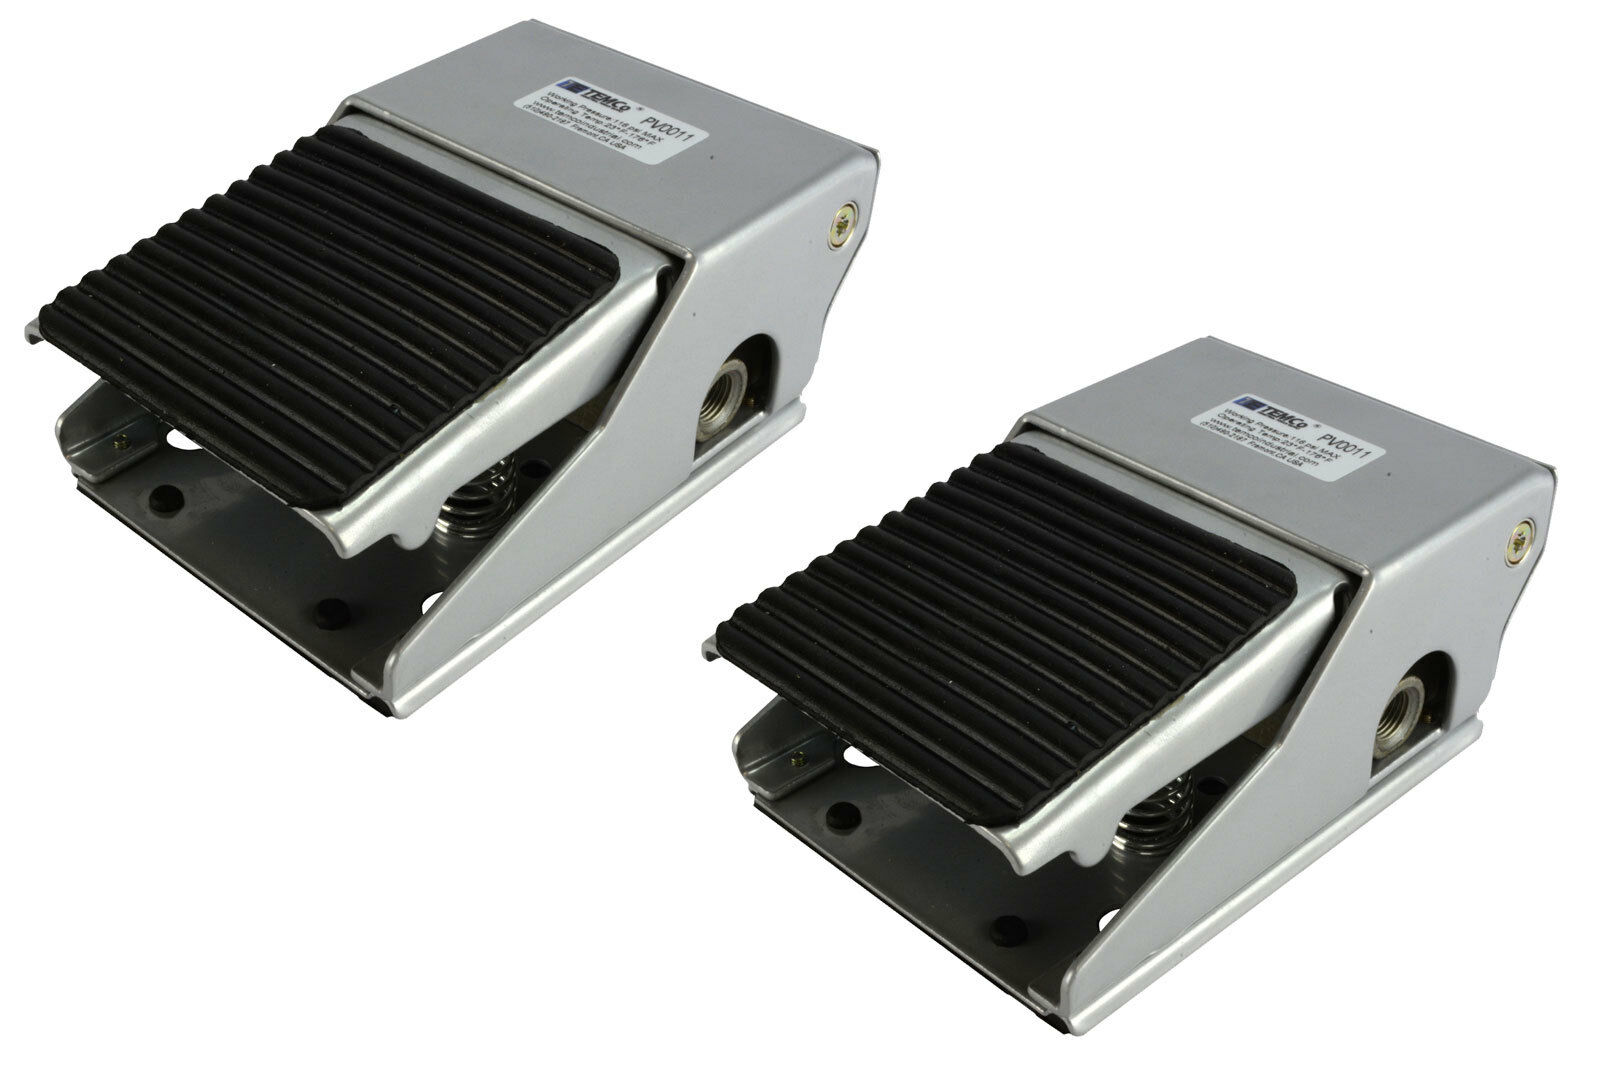 Directional Pneumatic Foot Pedal Valve Kit 2‑Position 5‑Way Aluminum Pedal with Cover Lock Foot Pedal Air Valve Foot Valve Energy Saving and Environmental Protection